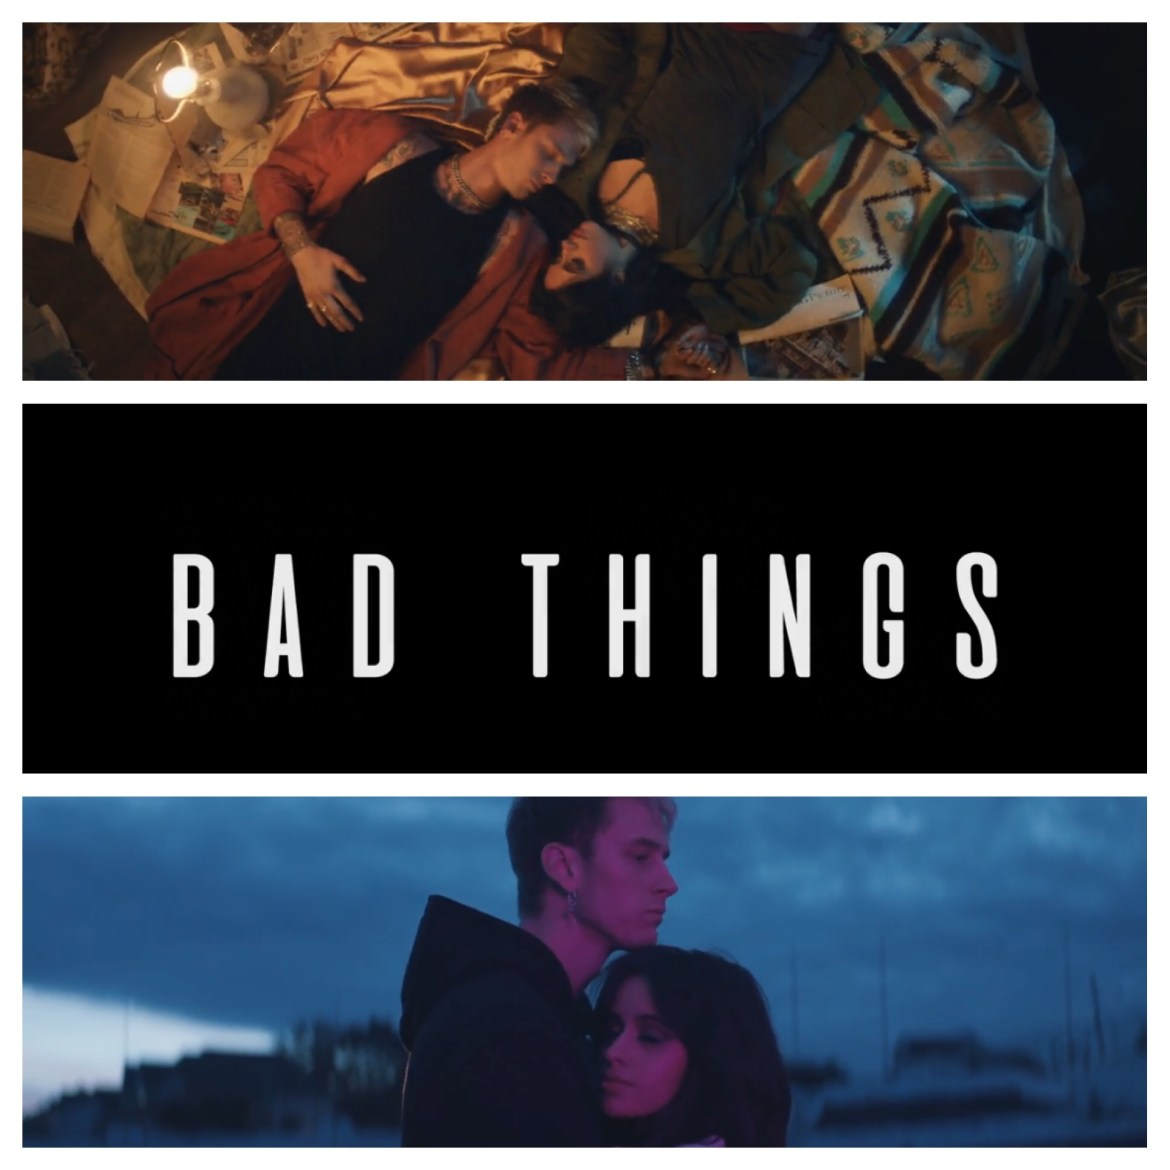 machine gun bad things